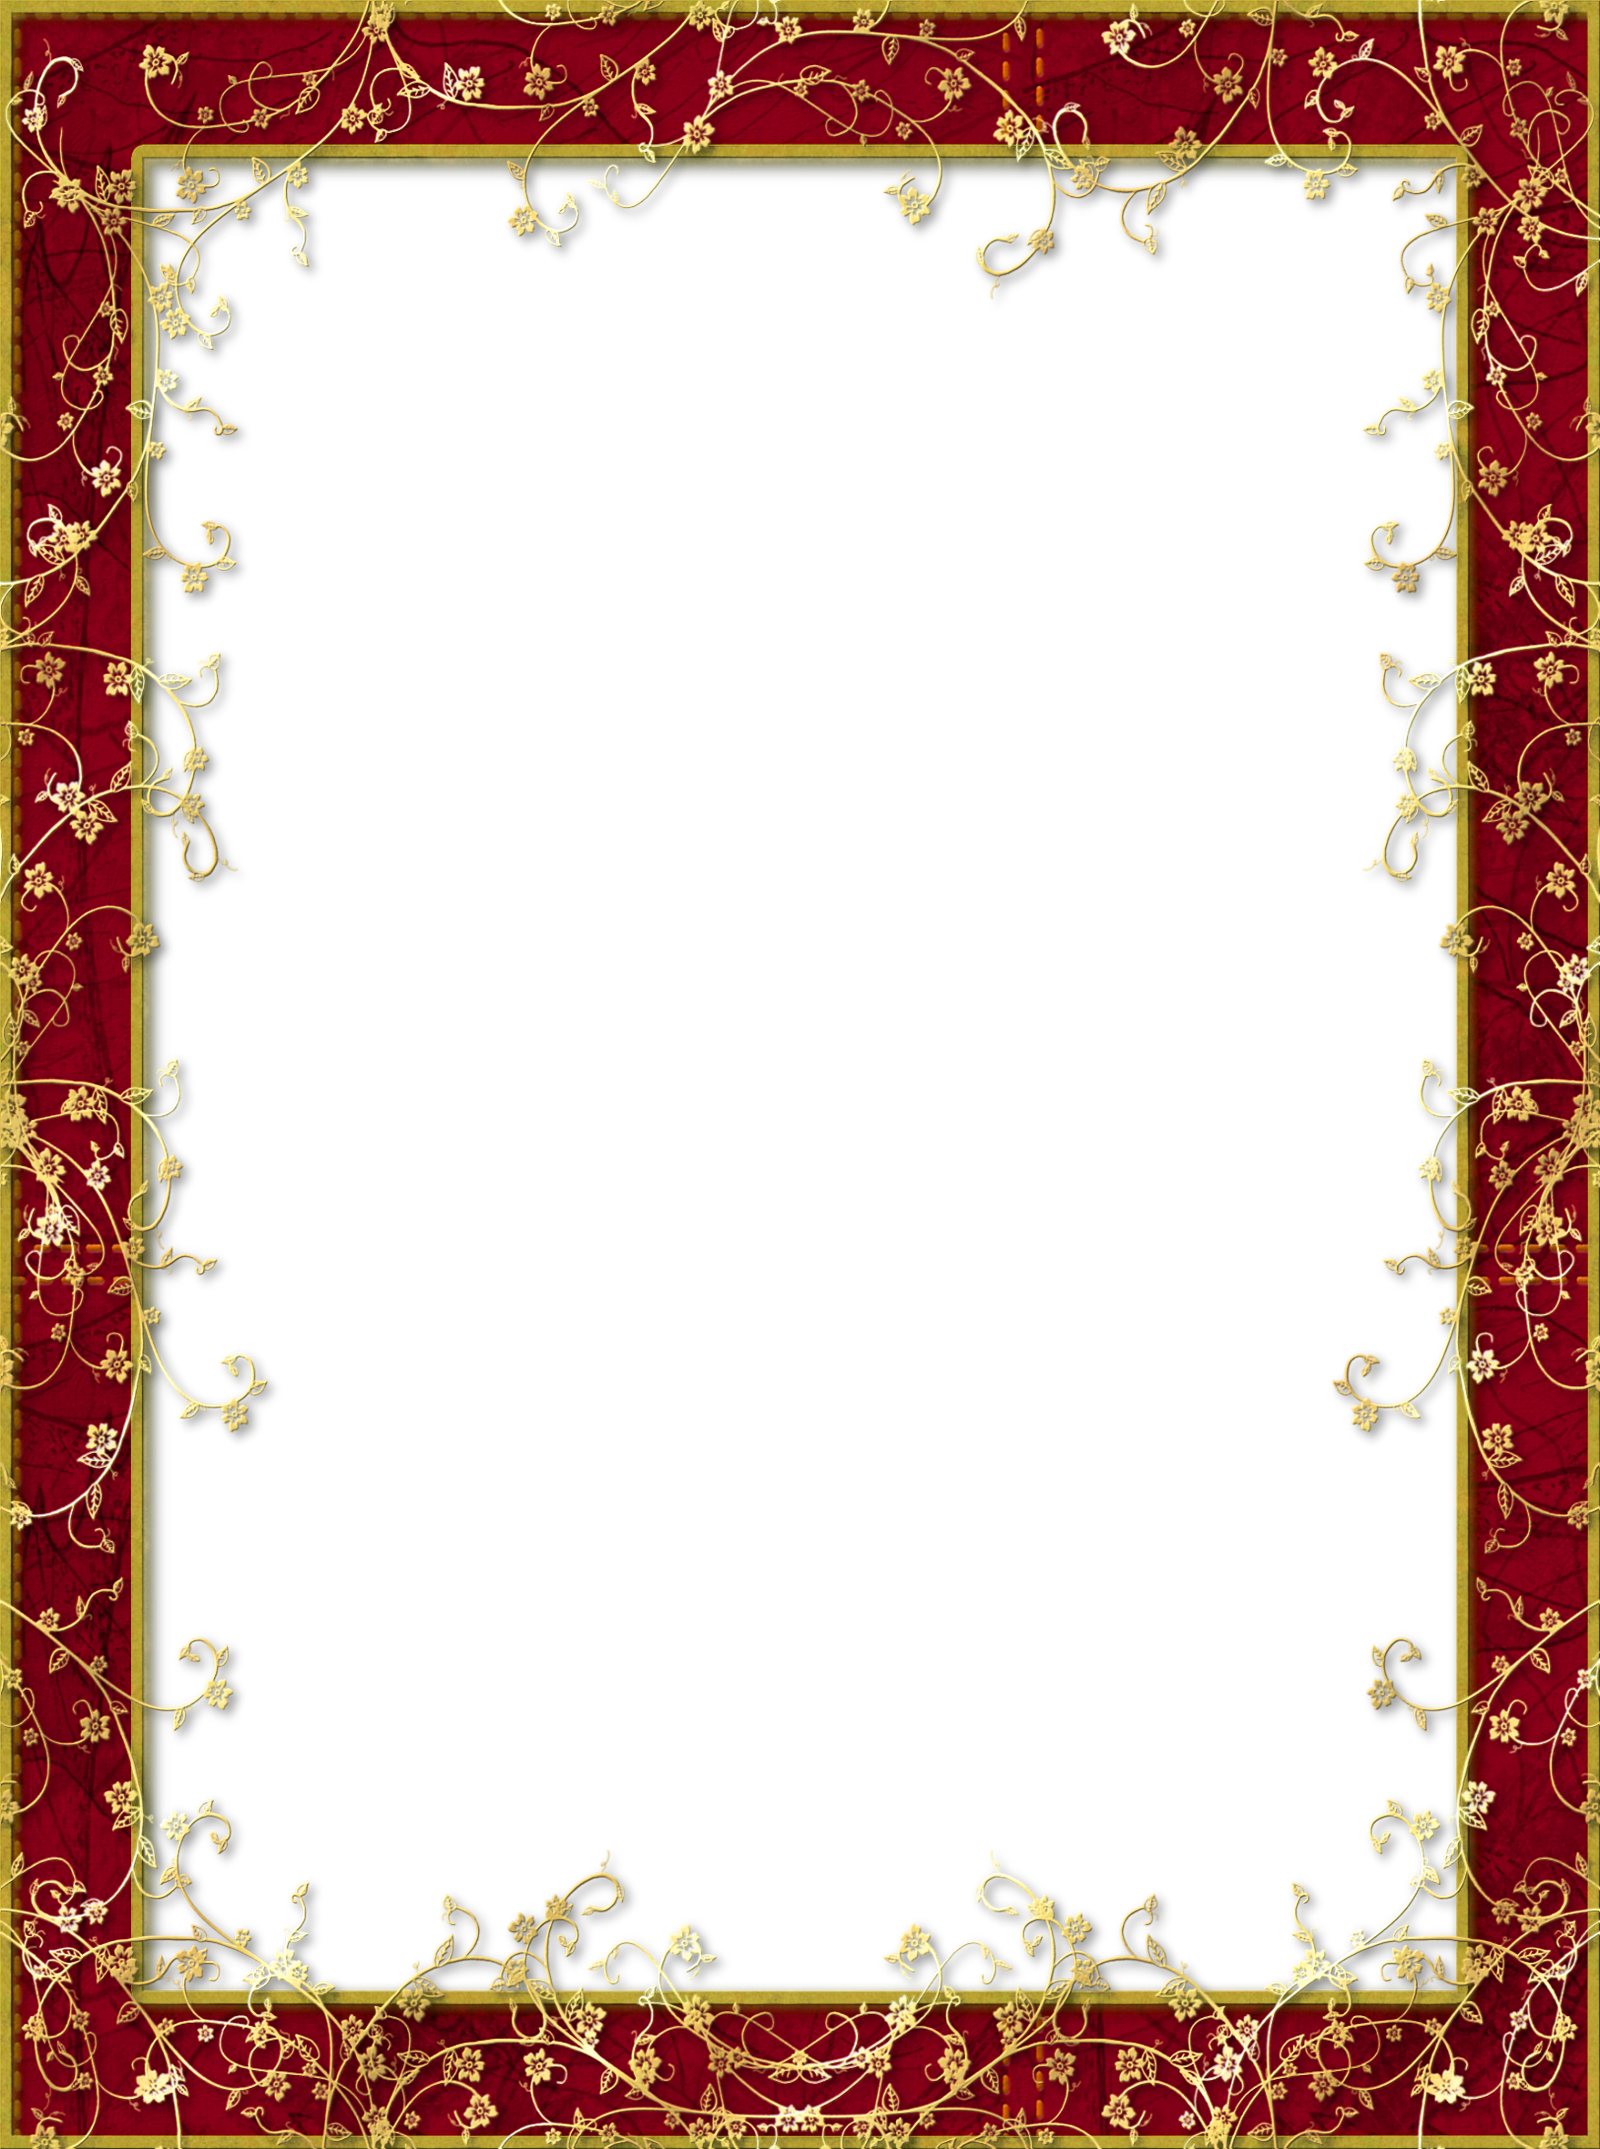 Free frames png. Red transparent frame with